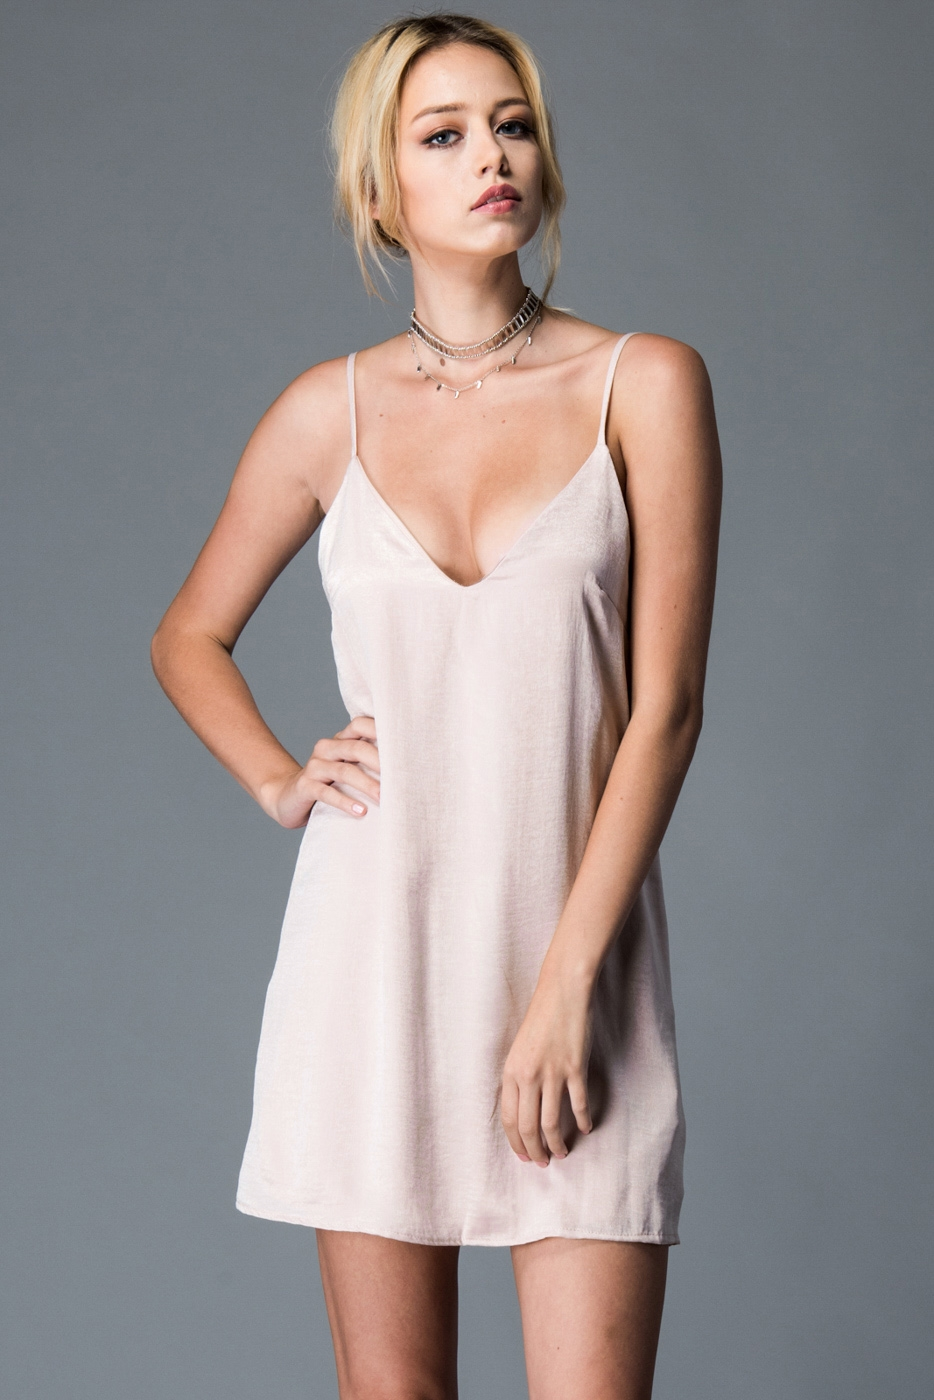 V-NECK SLIP SATIN DRESS - orangeshine.com